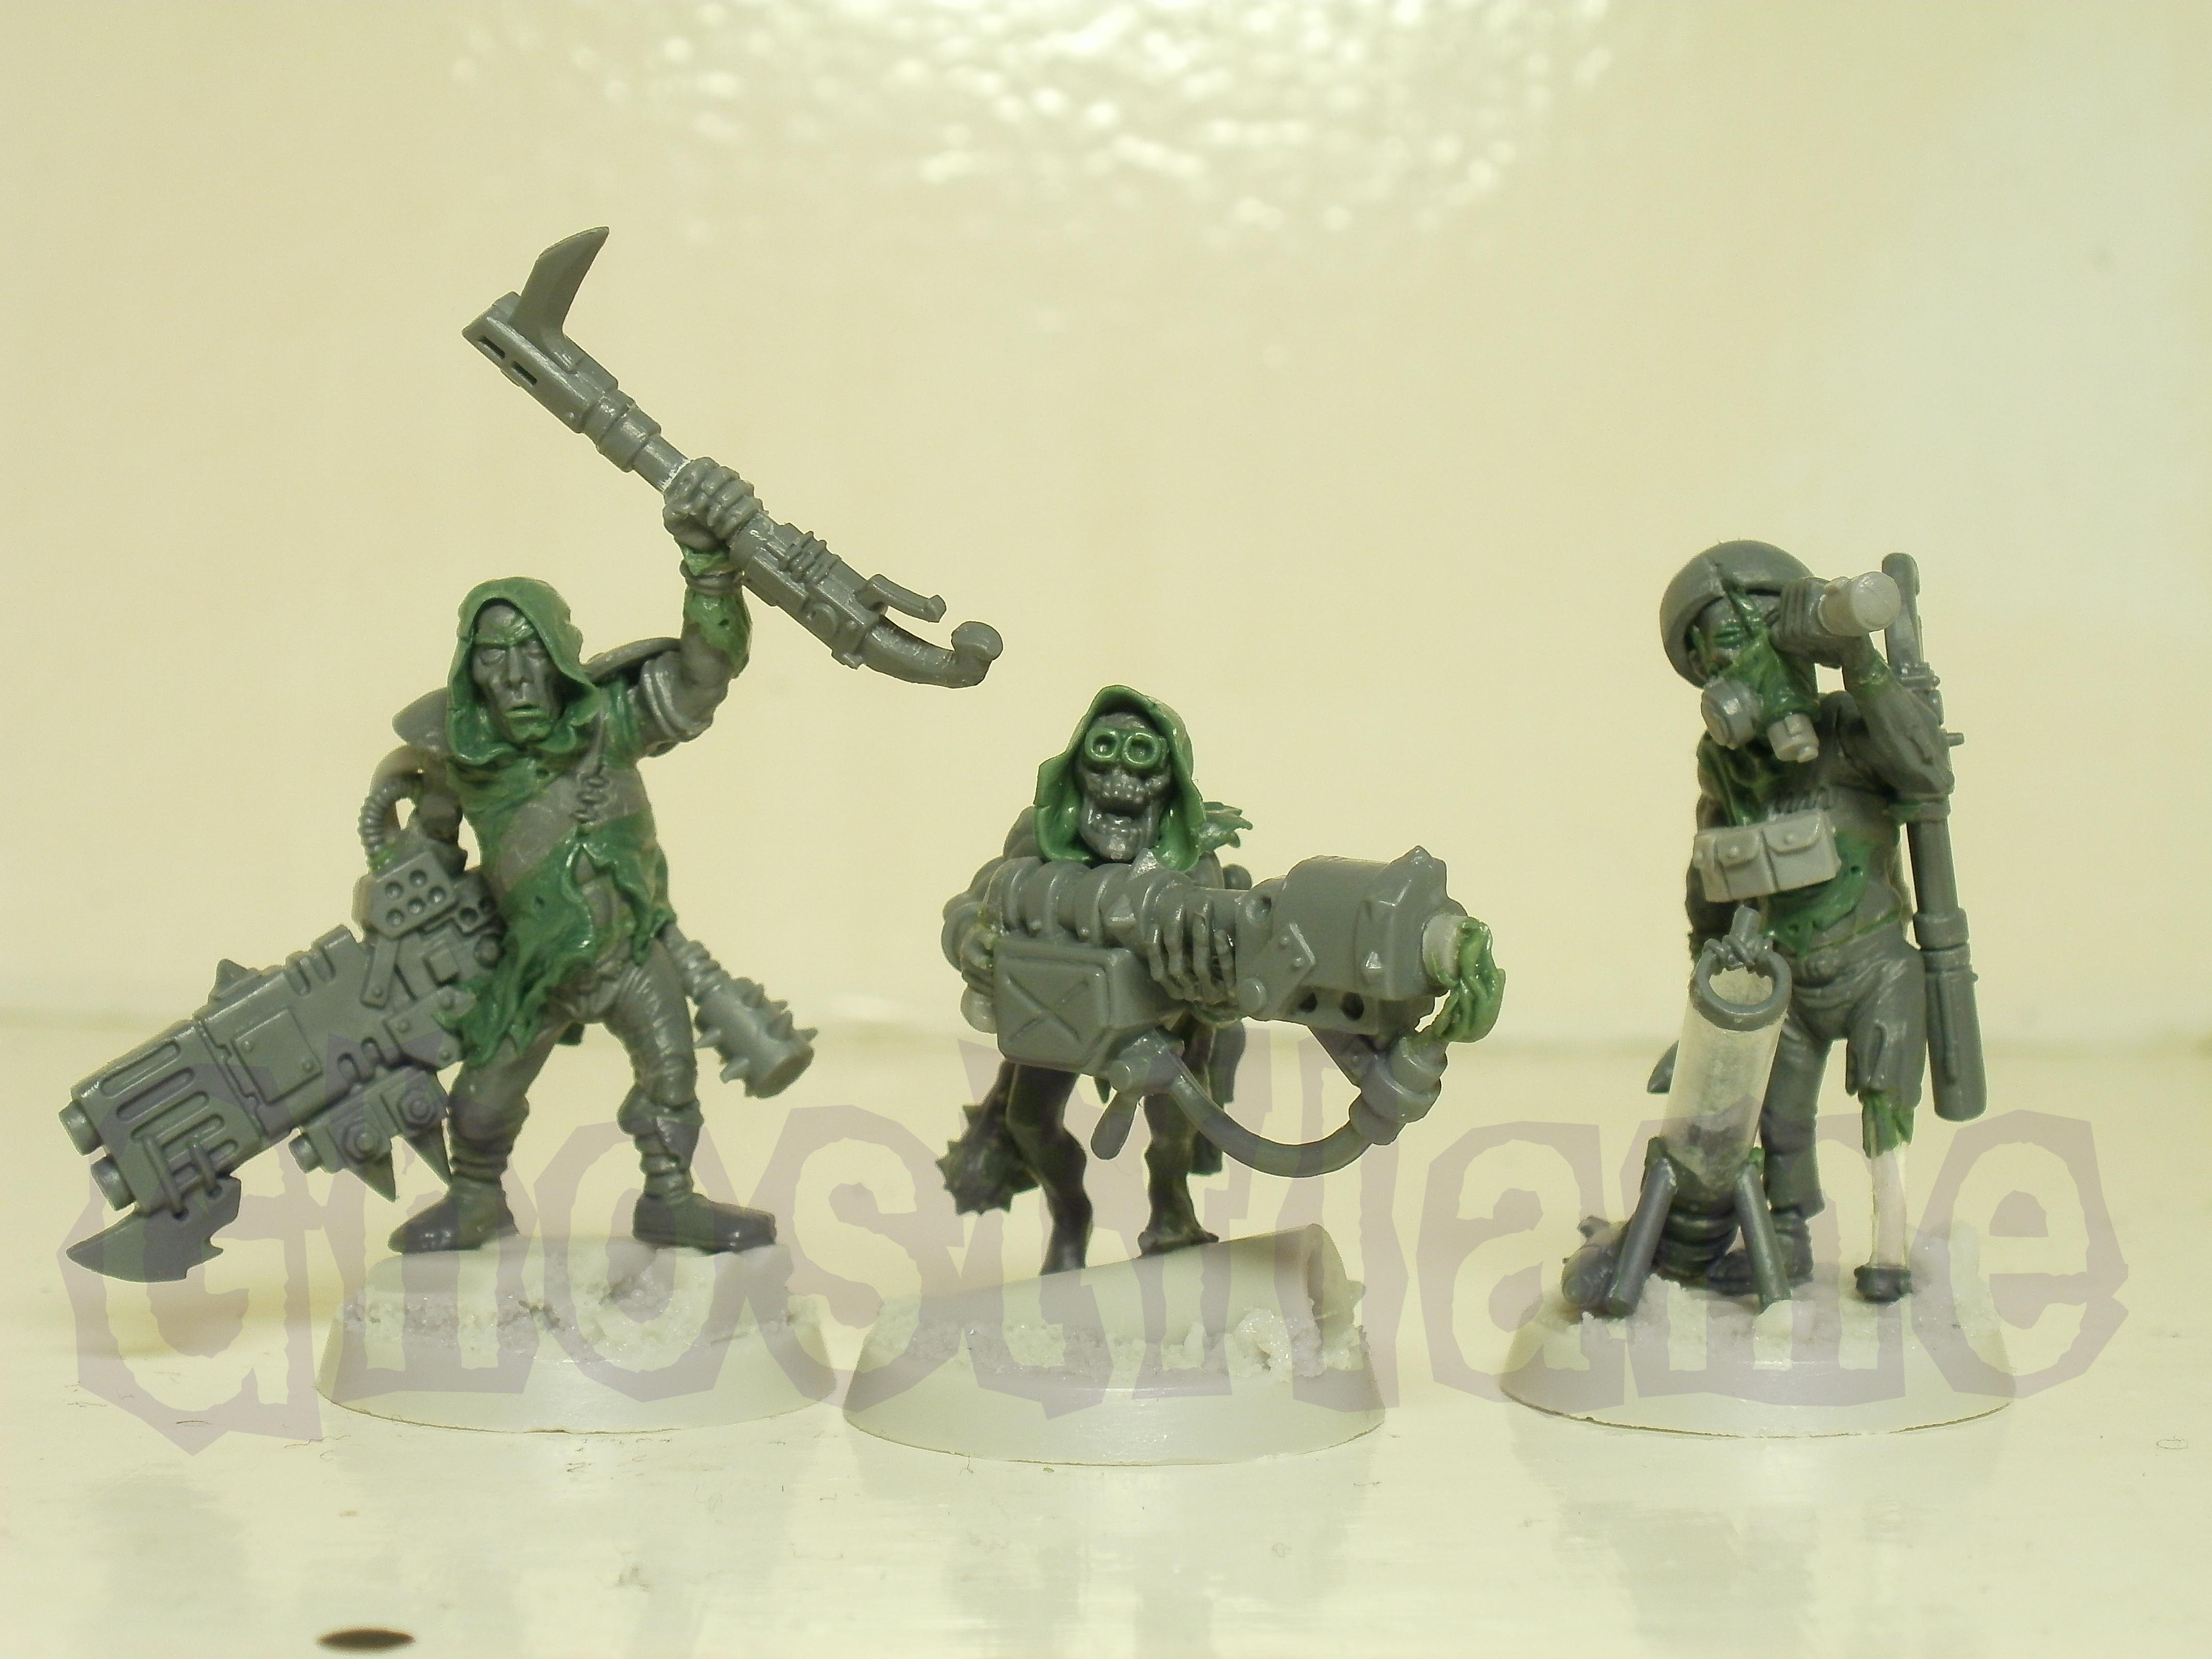 =][=munda, Chaos, Cultist, Gang, Ghostflame, I Munda, Inq28mm, Lost And The Damned, Mutant, Necromunda, Scavvie, Scavvies, Scavvy, Work In Progress